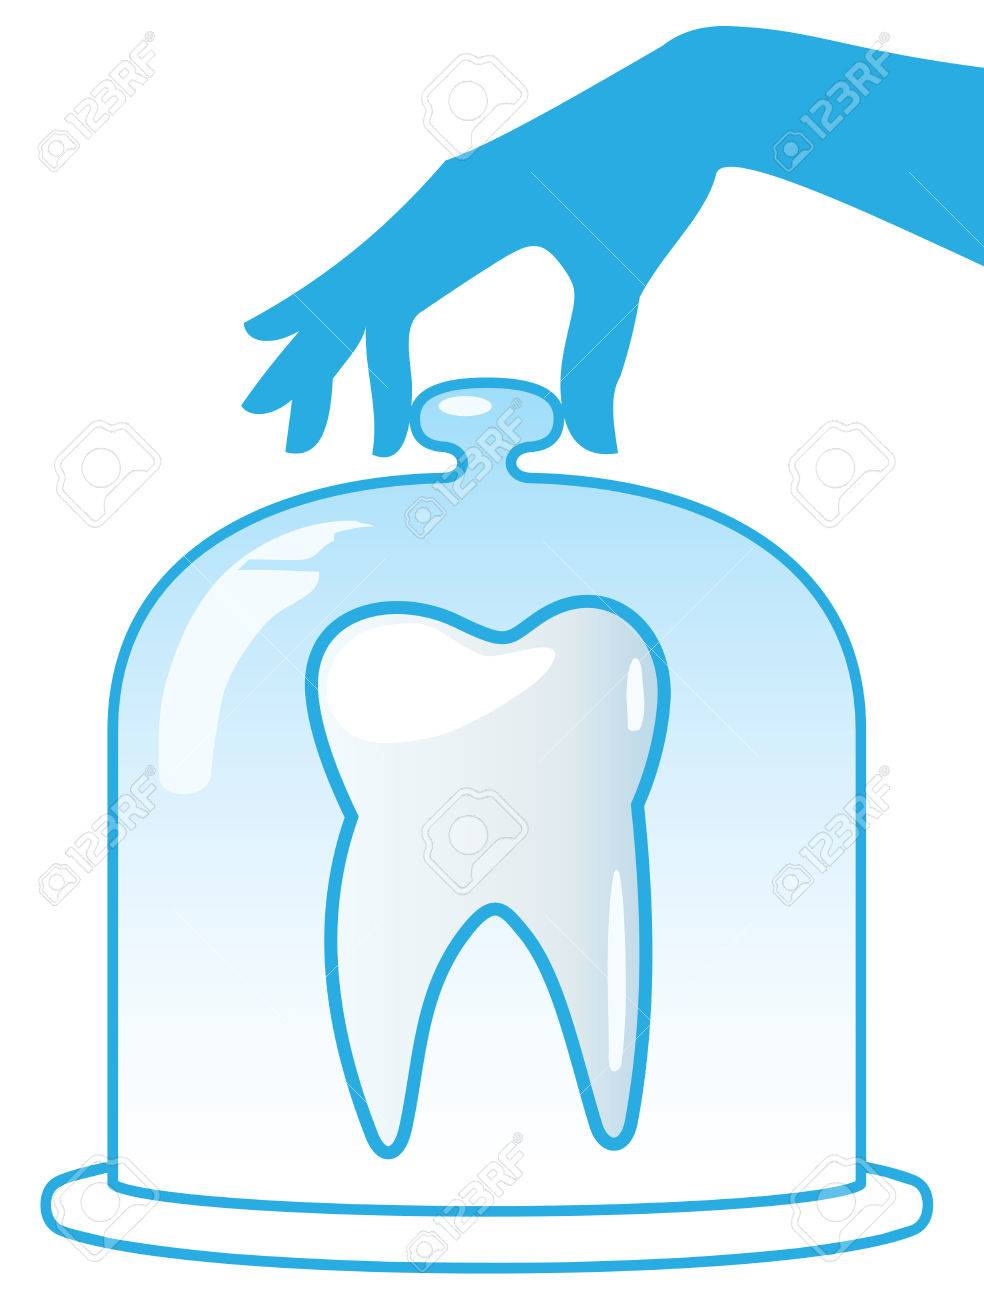 A healthy tooth is protected by a glass dome. Dentistry. Stock Vector - 8711187